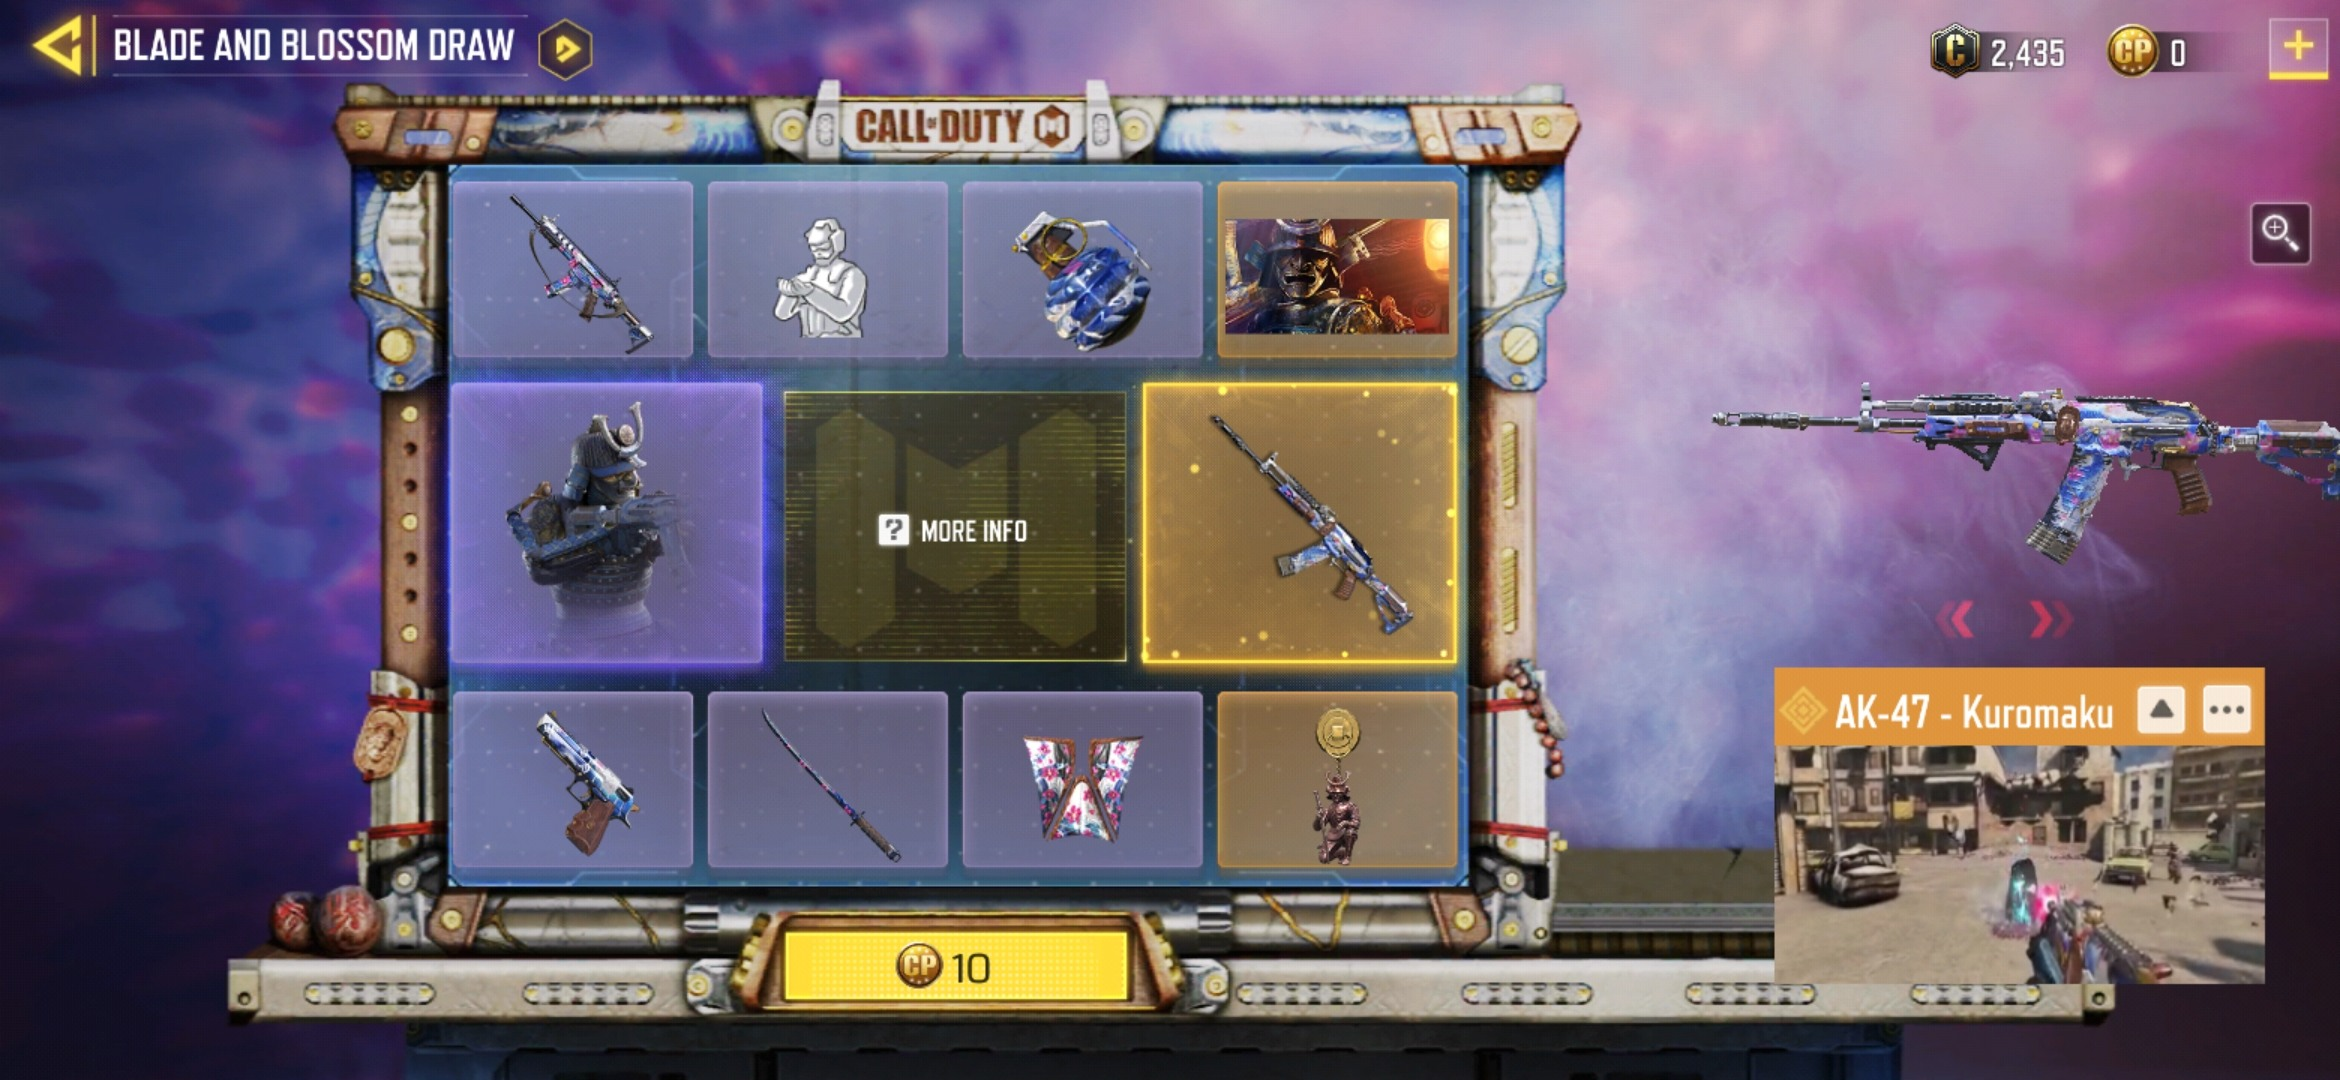 Call of Duty: Mobile Season 3 Blade and Blossom Draw Complete Details